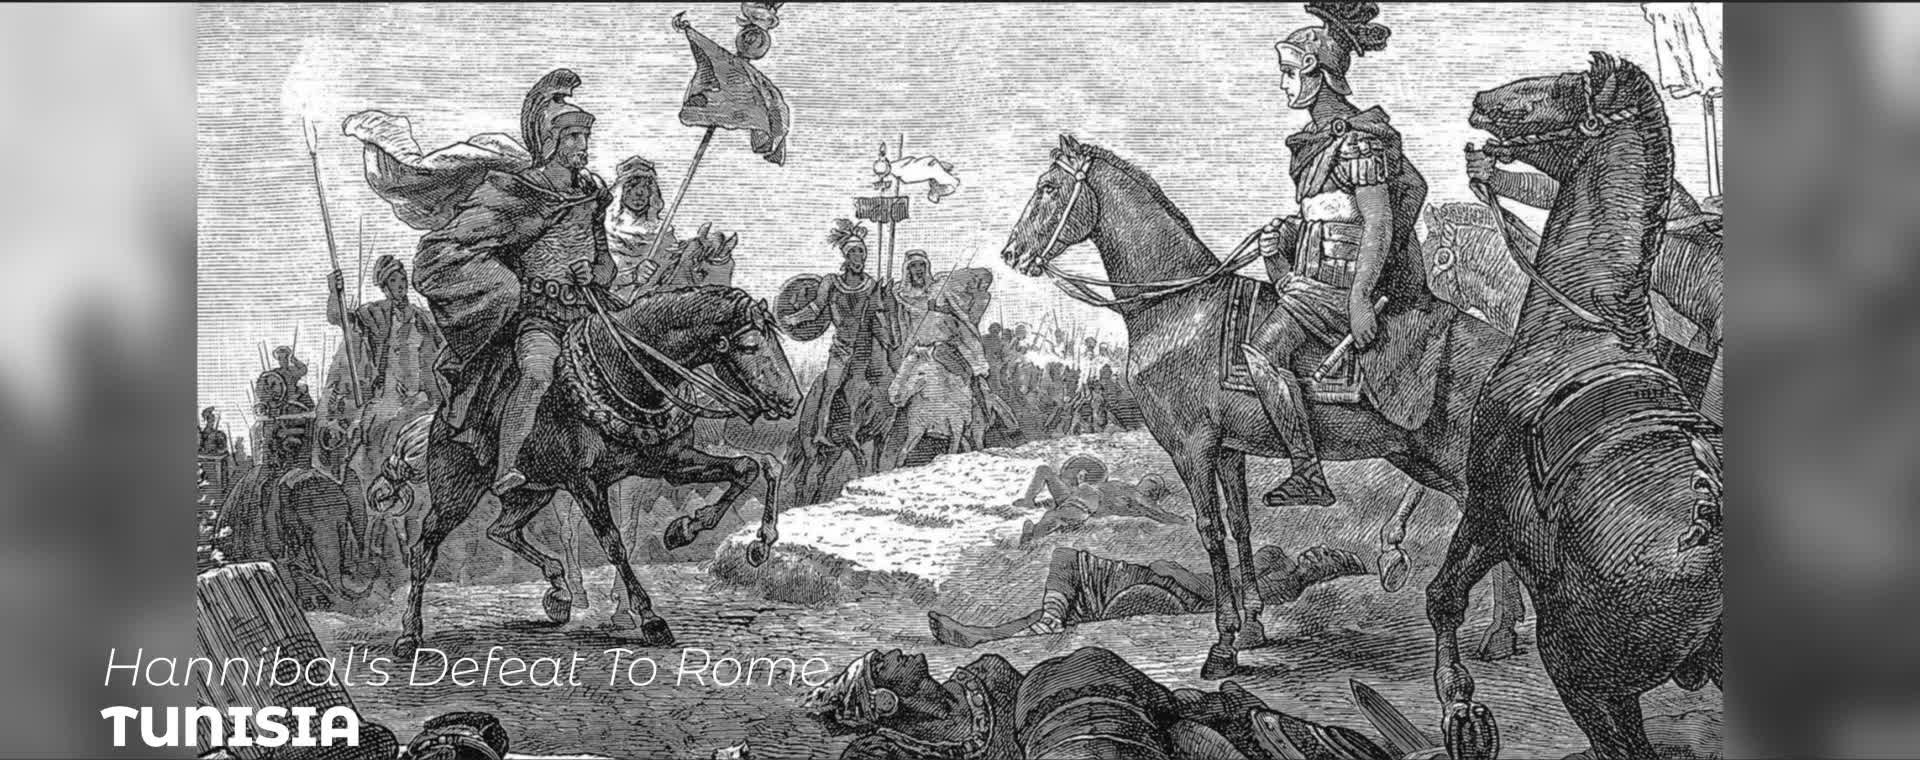 HANNIBAL'S DEFEAT TO ROME